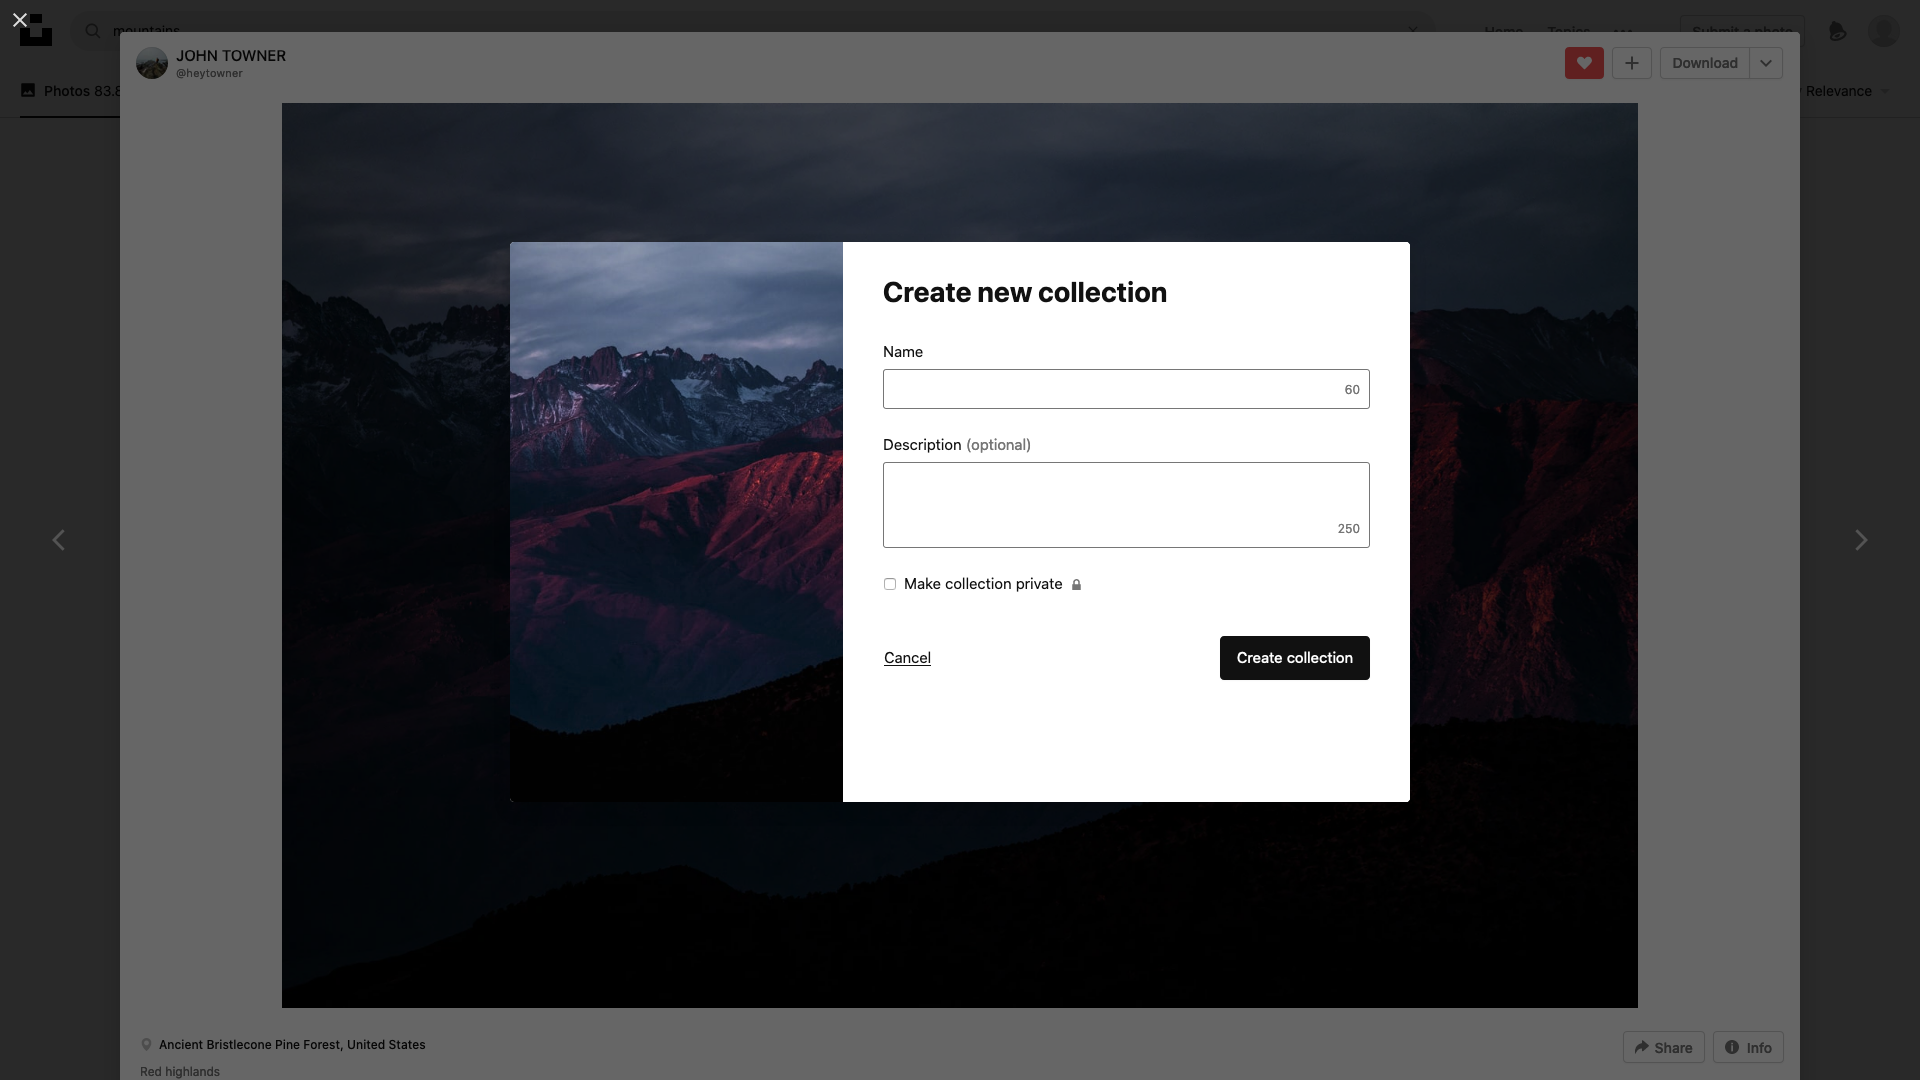 Create new collection screenshot